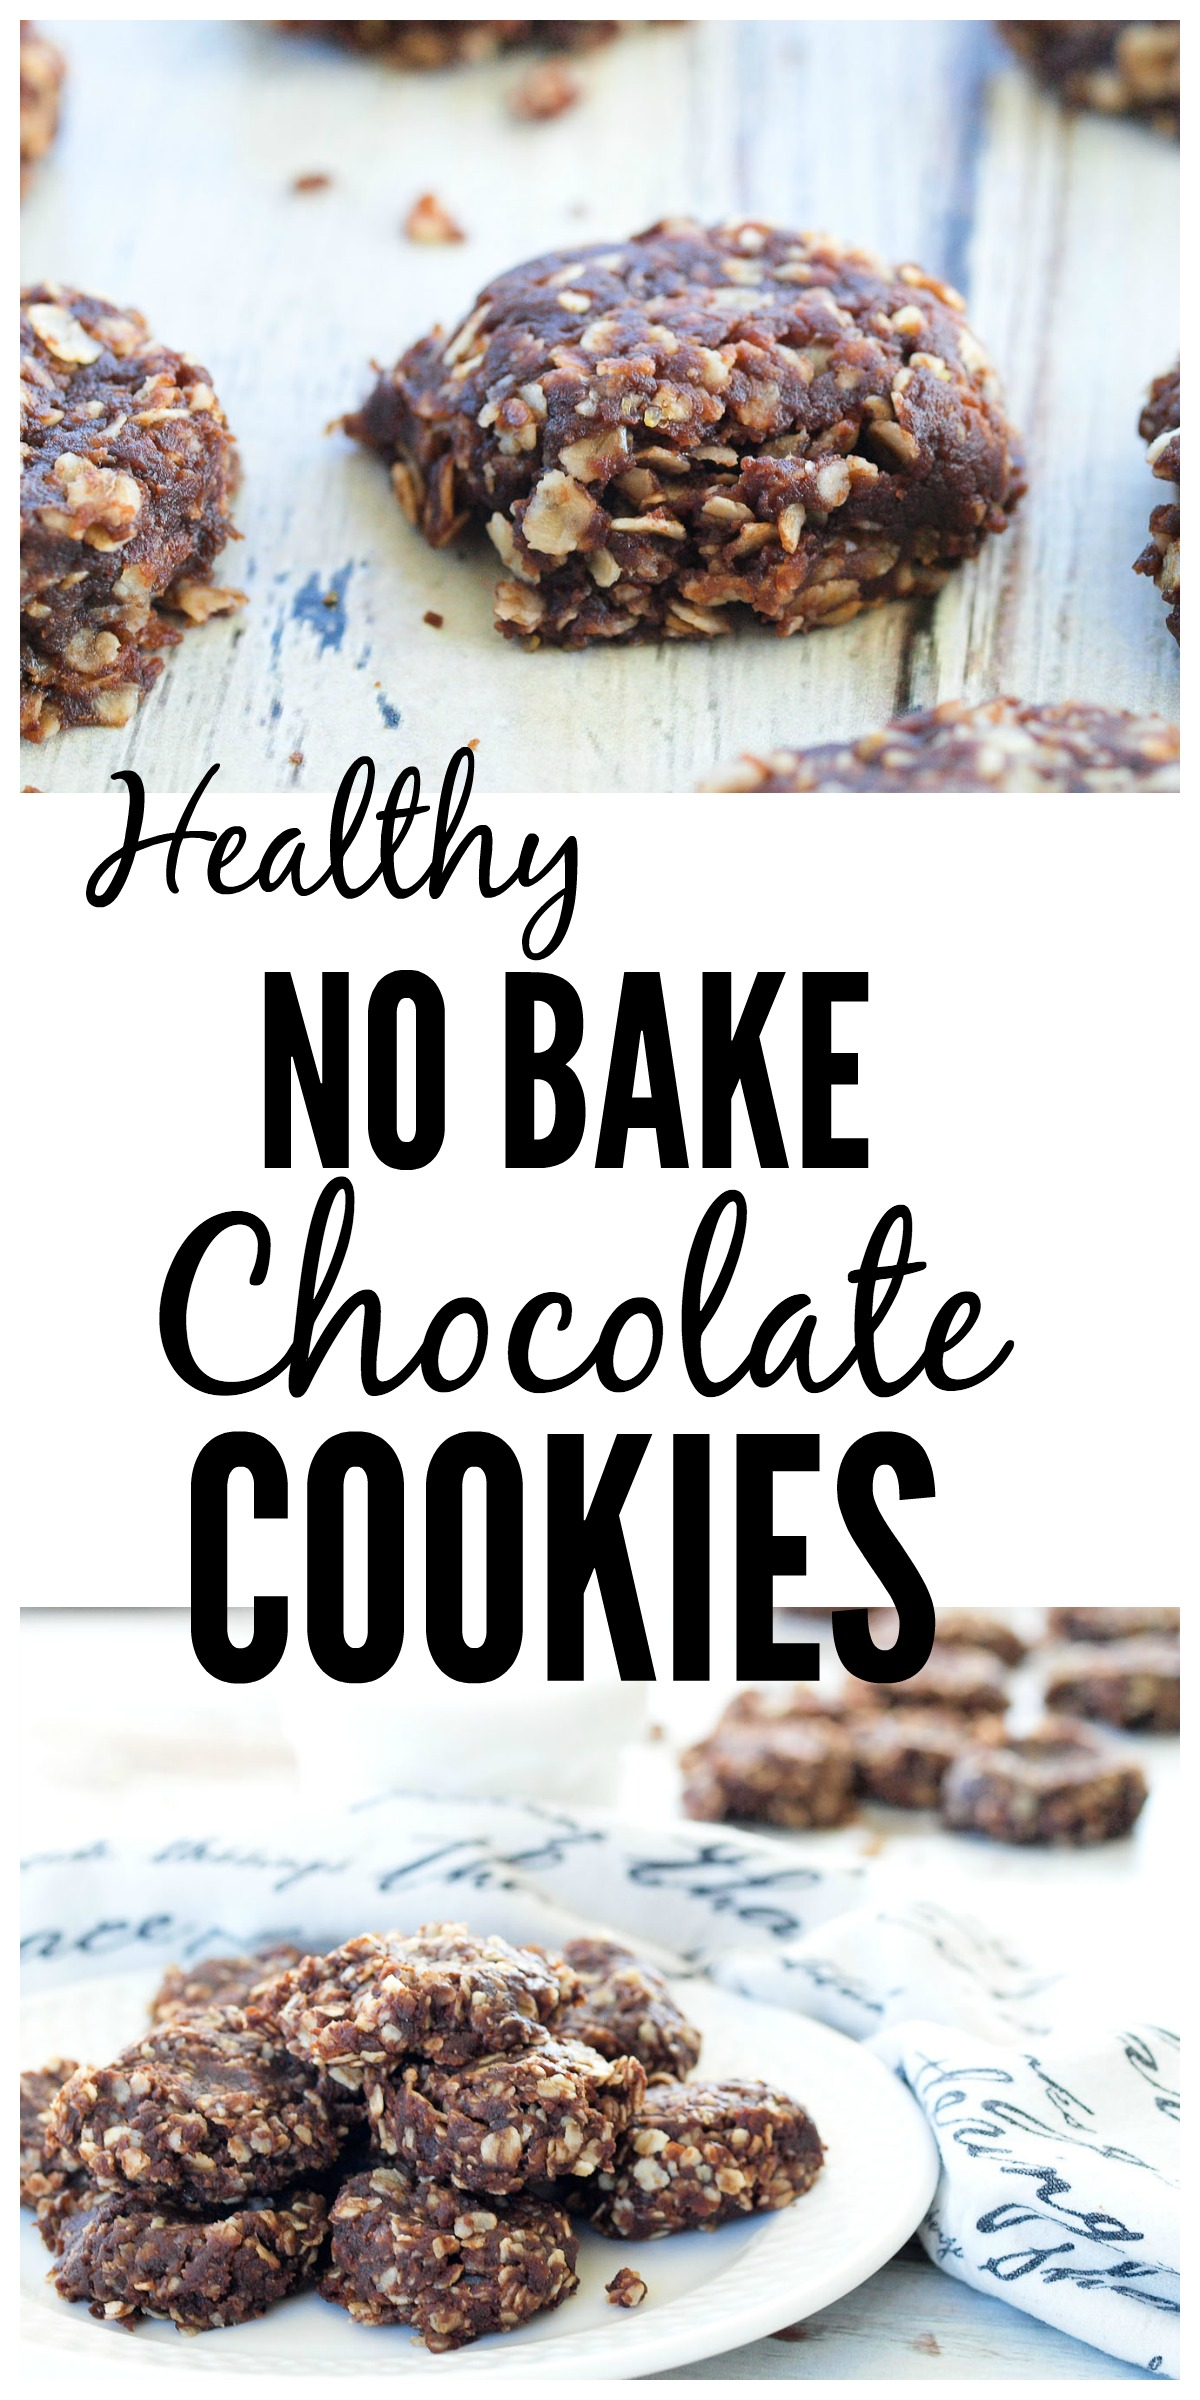 Healthy No Bake Chocolate Cookies Twist On A Classic Chocolate No Bake Cookie